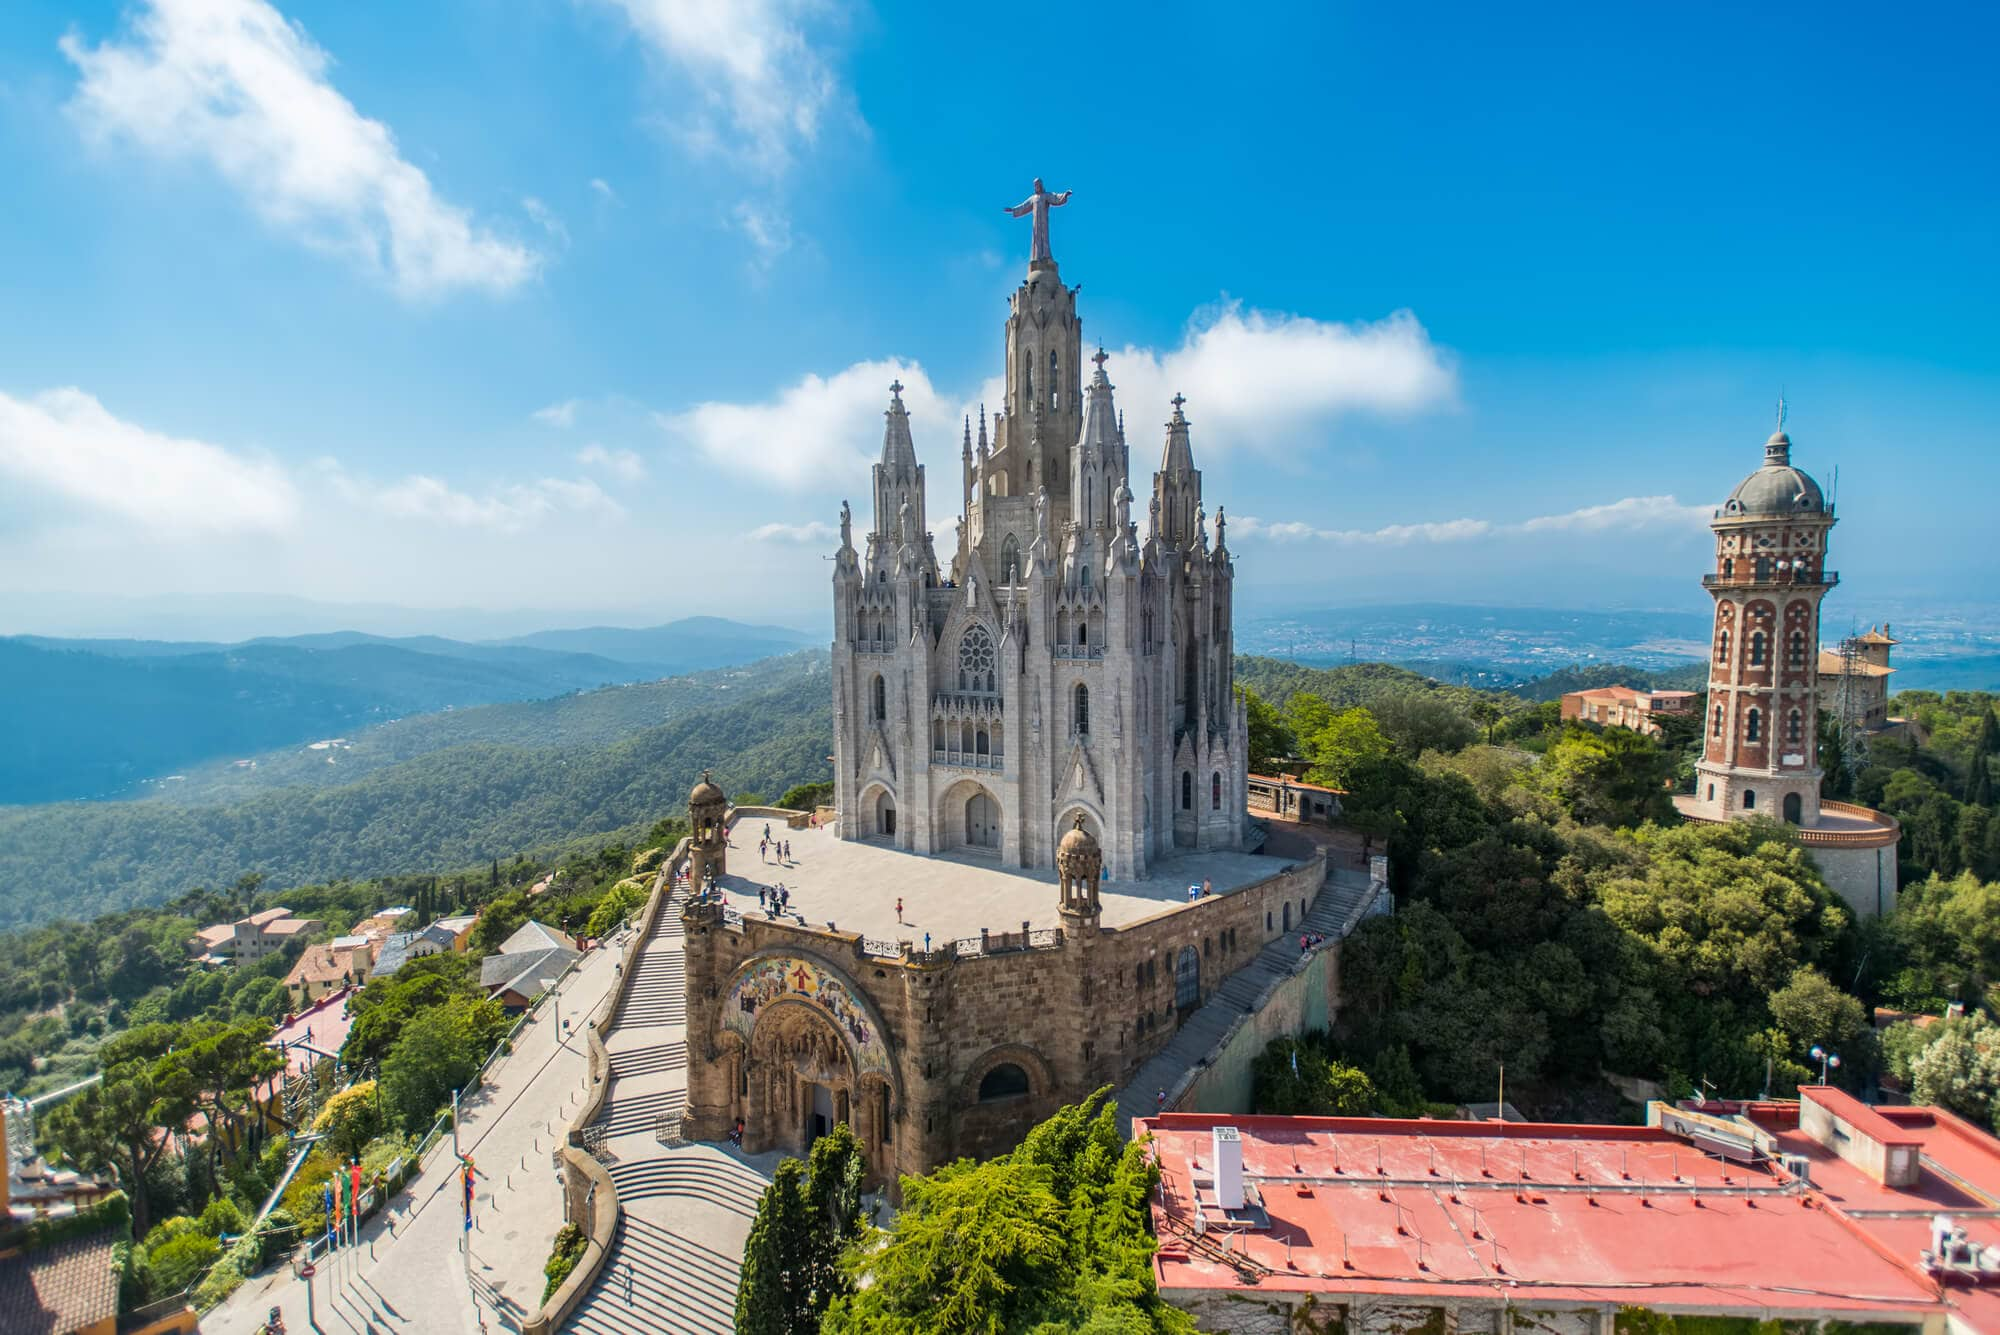 Spain quotes and captions for Instagram - Sagrat Cor, a church on the summit of Mount Tibidabo in Barcelona, Catalonia